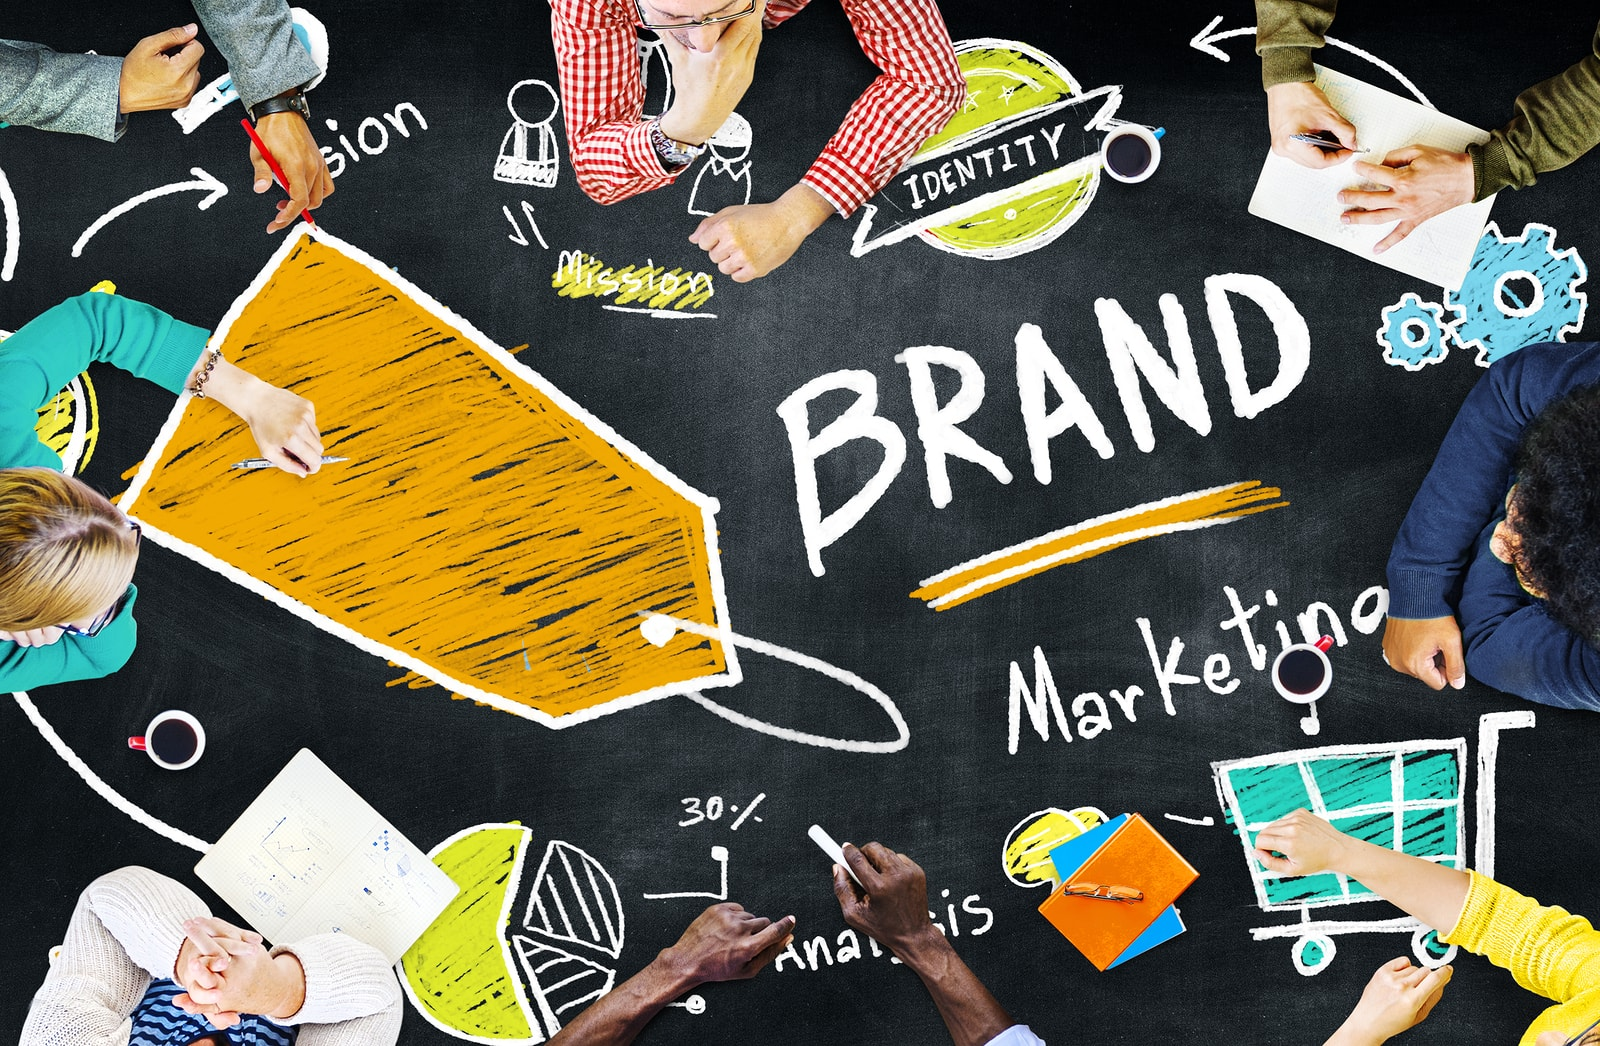 Branding Tips to Get More